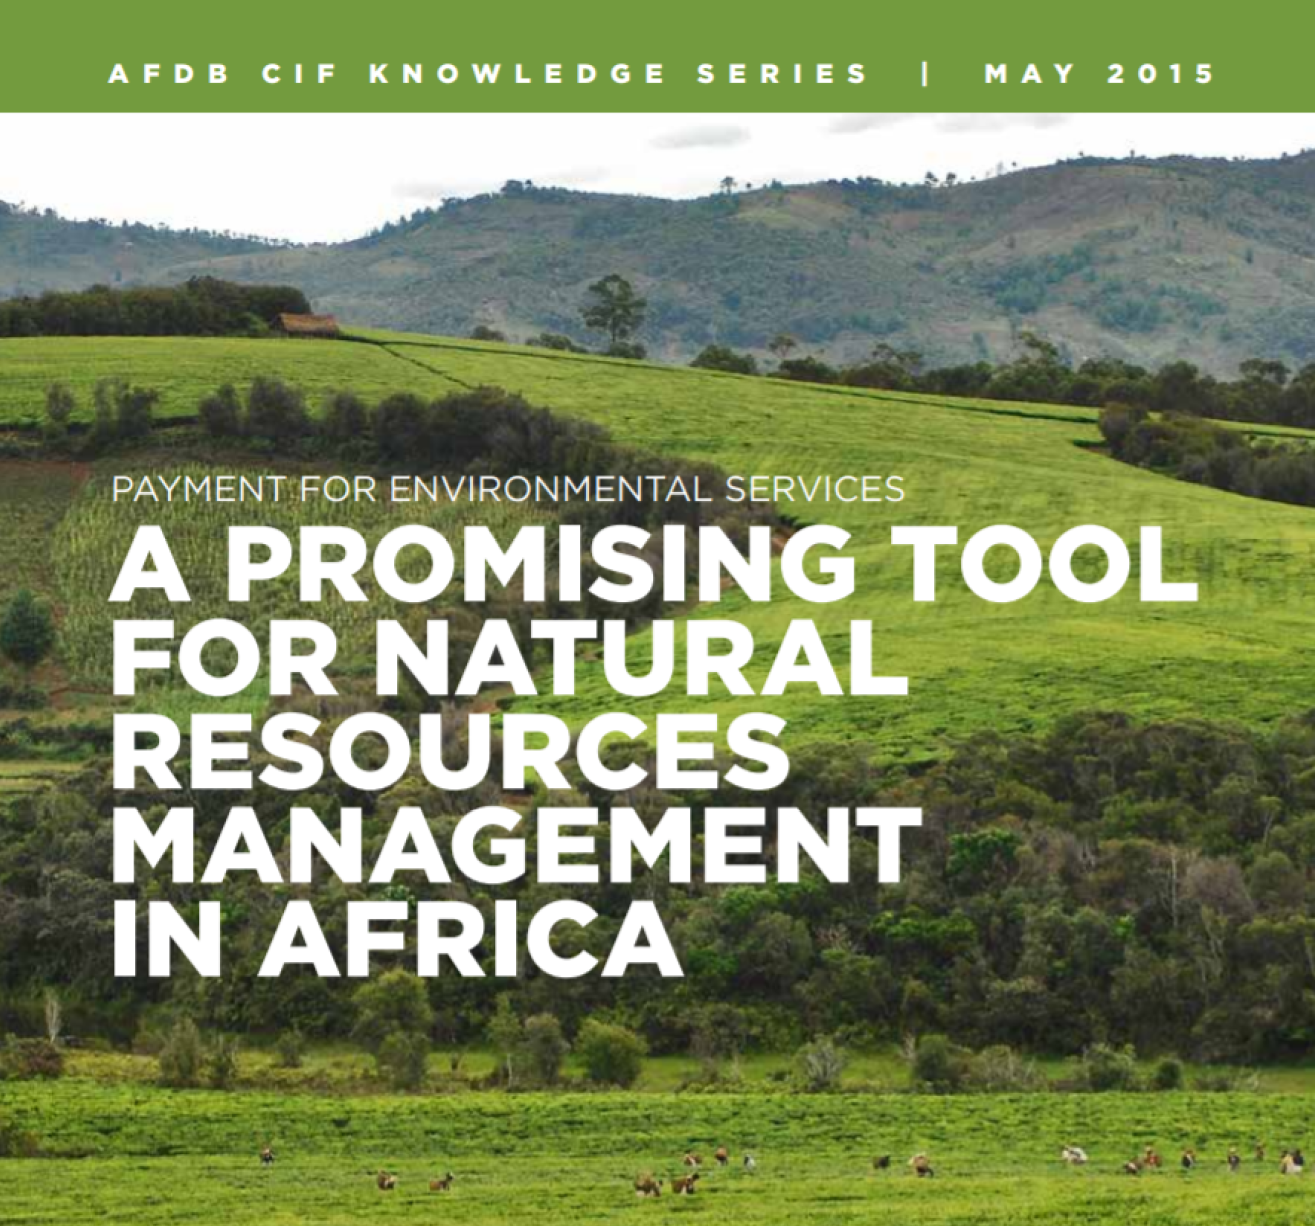 Payment for environmental services – A promising tool for natural resource management in Africa